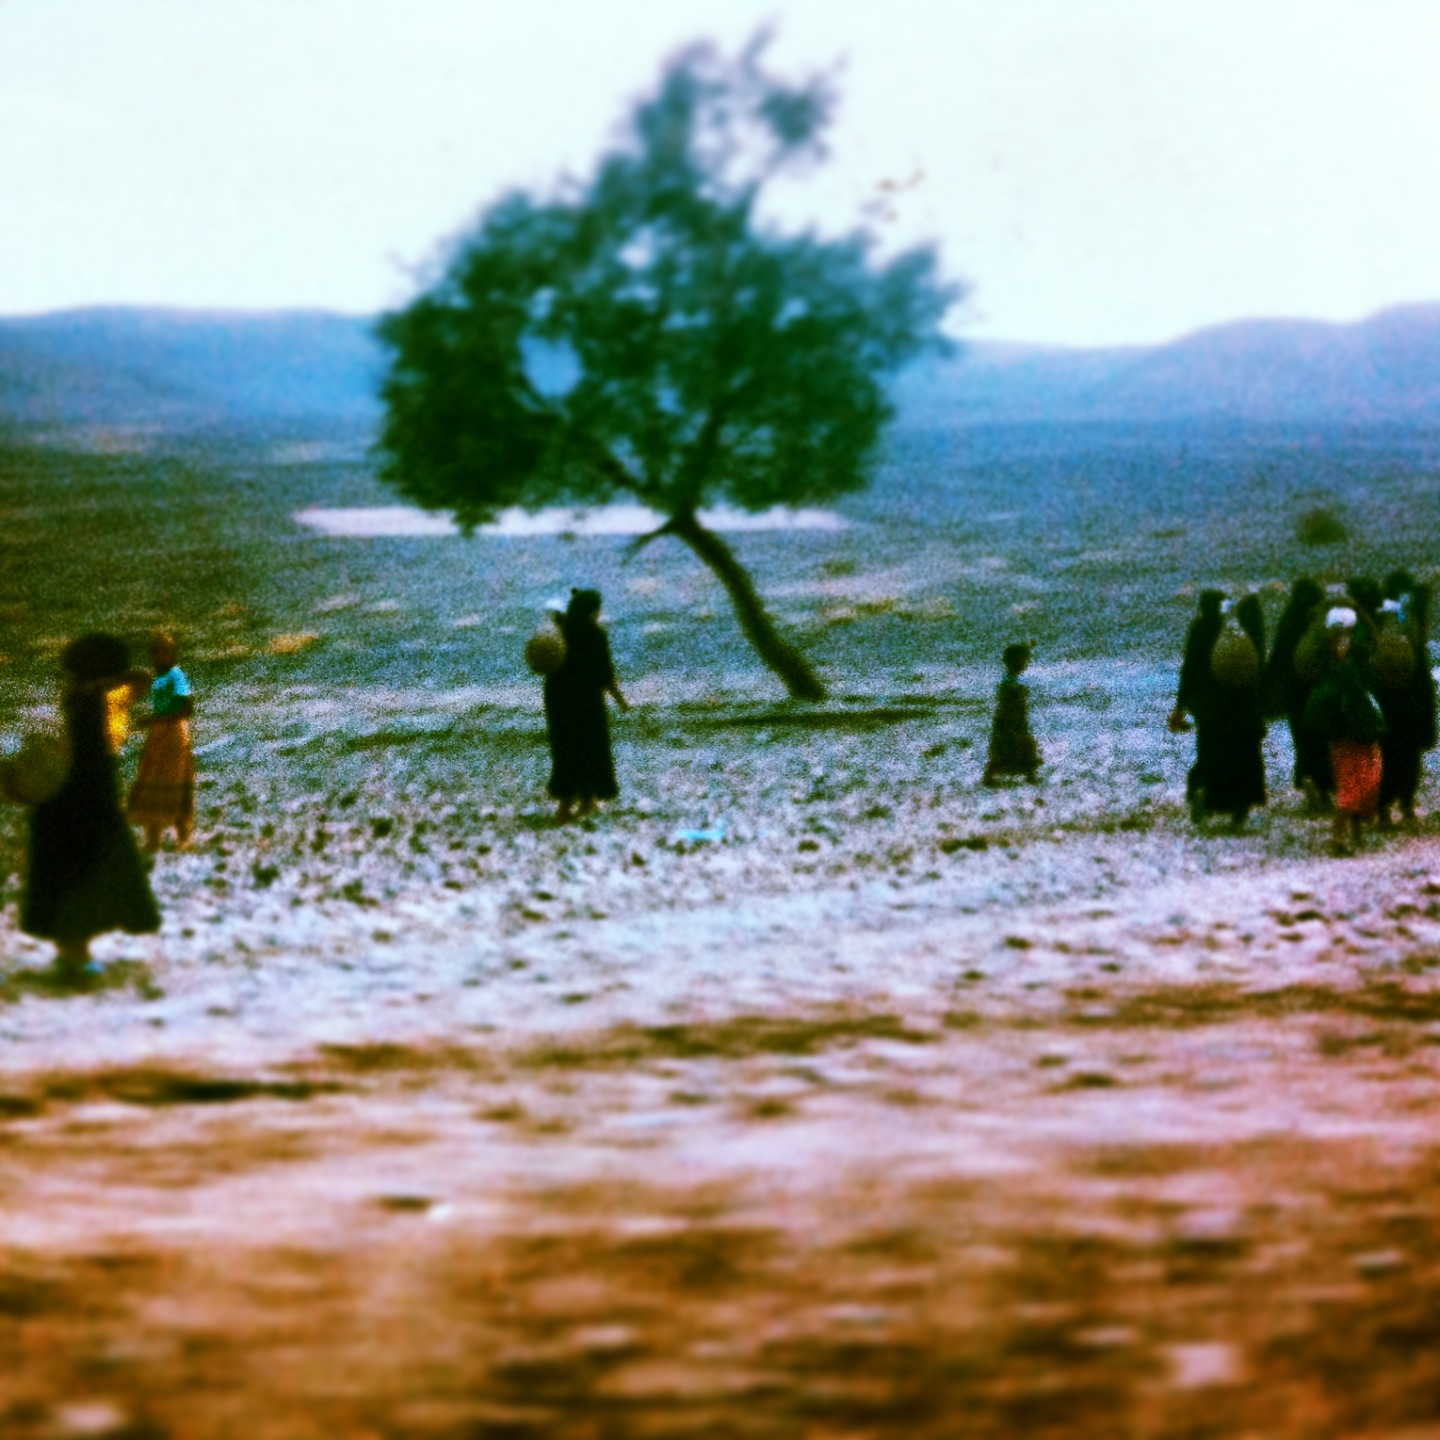 Women walking in rural Morocco